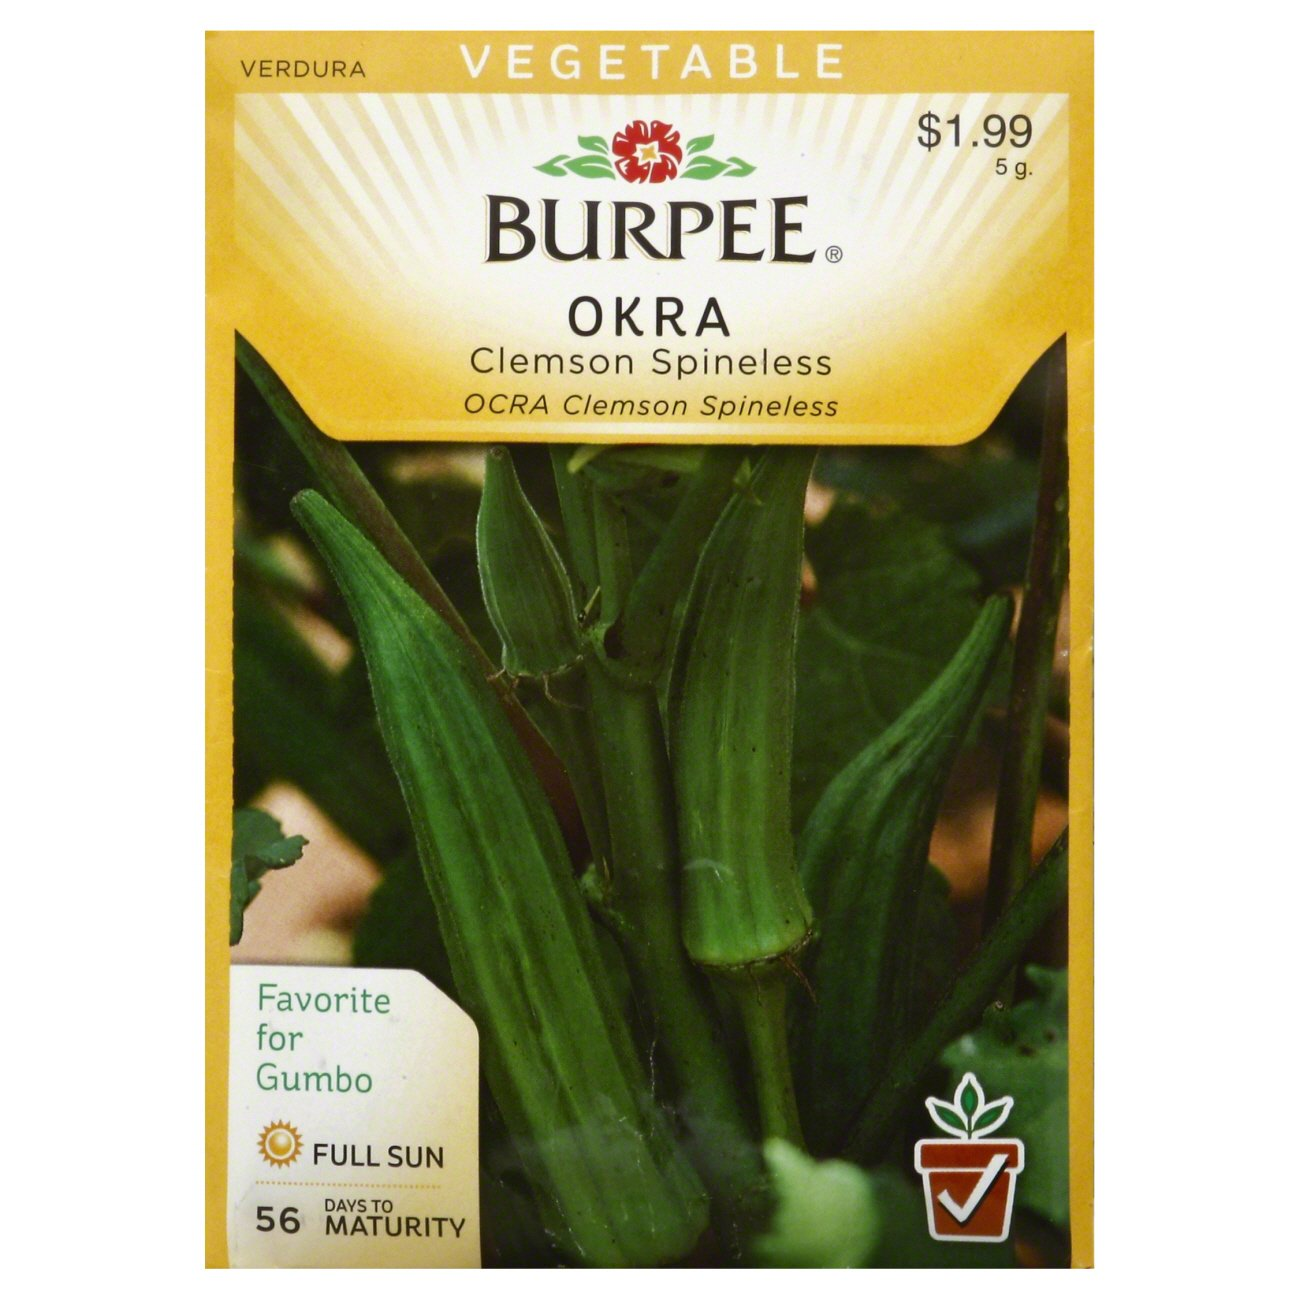 Burpee Okra Seeds Clemson Spineless Shop Plants And Trees At Heb